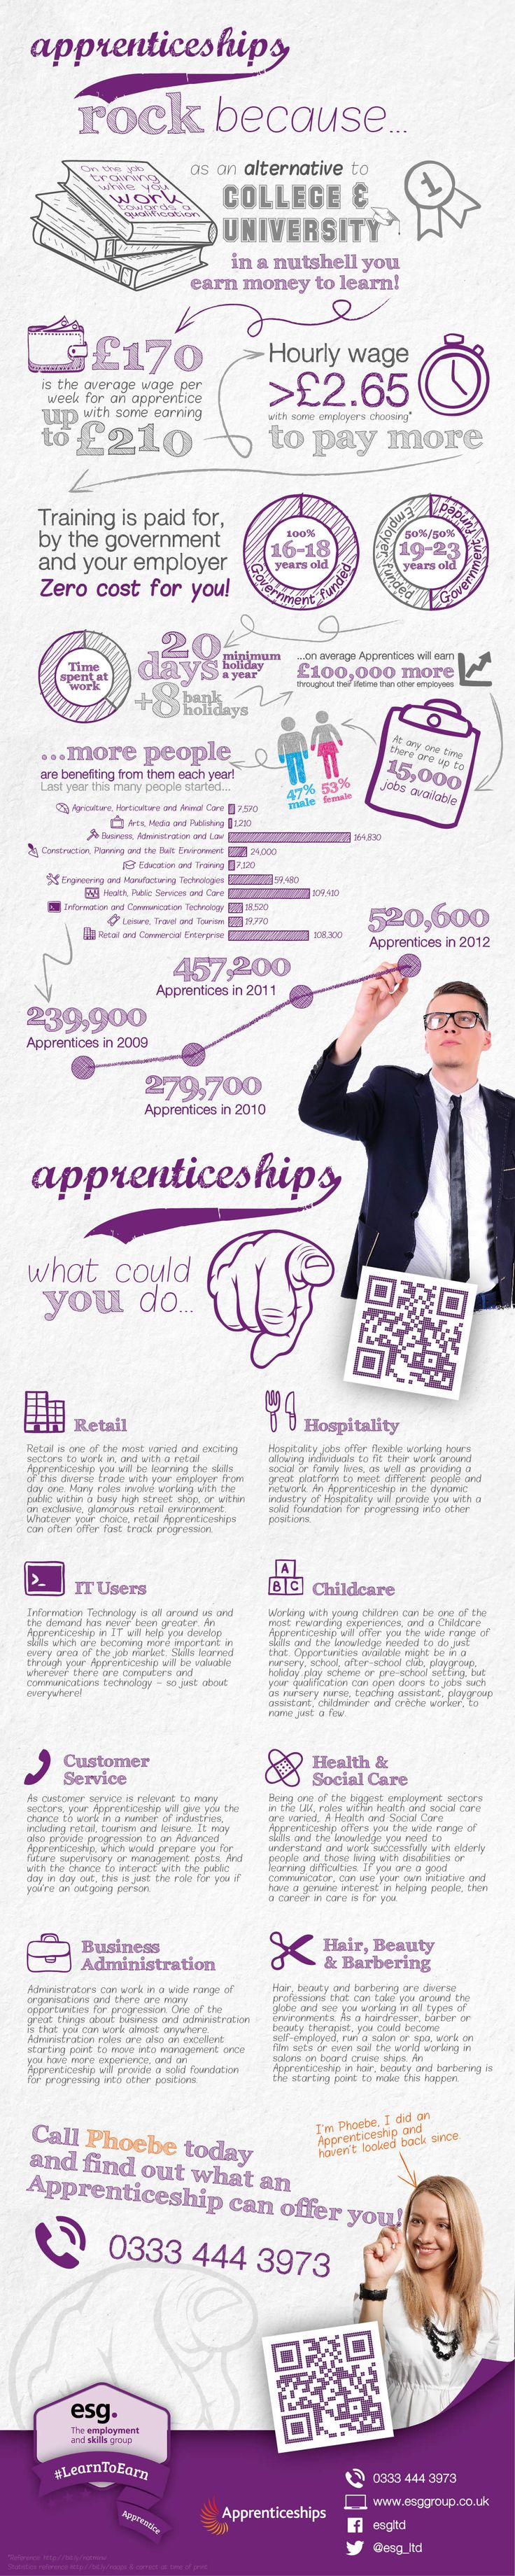 Apprenticeships rock Infographic with esg, have a look why...  #work #inforgraphic #apprenticeships #apprentice